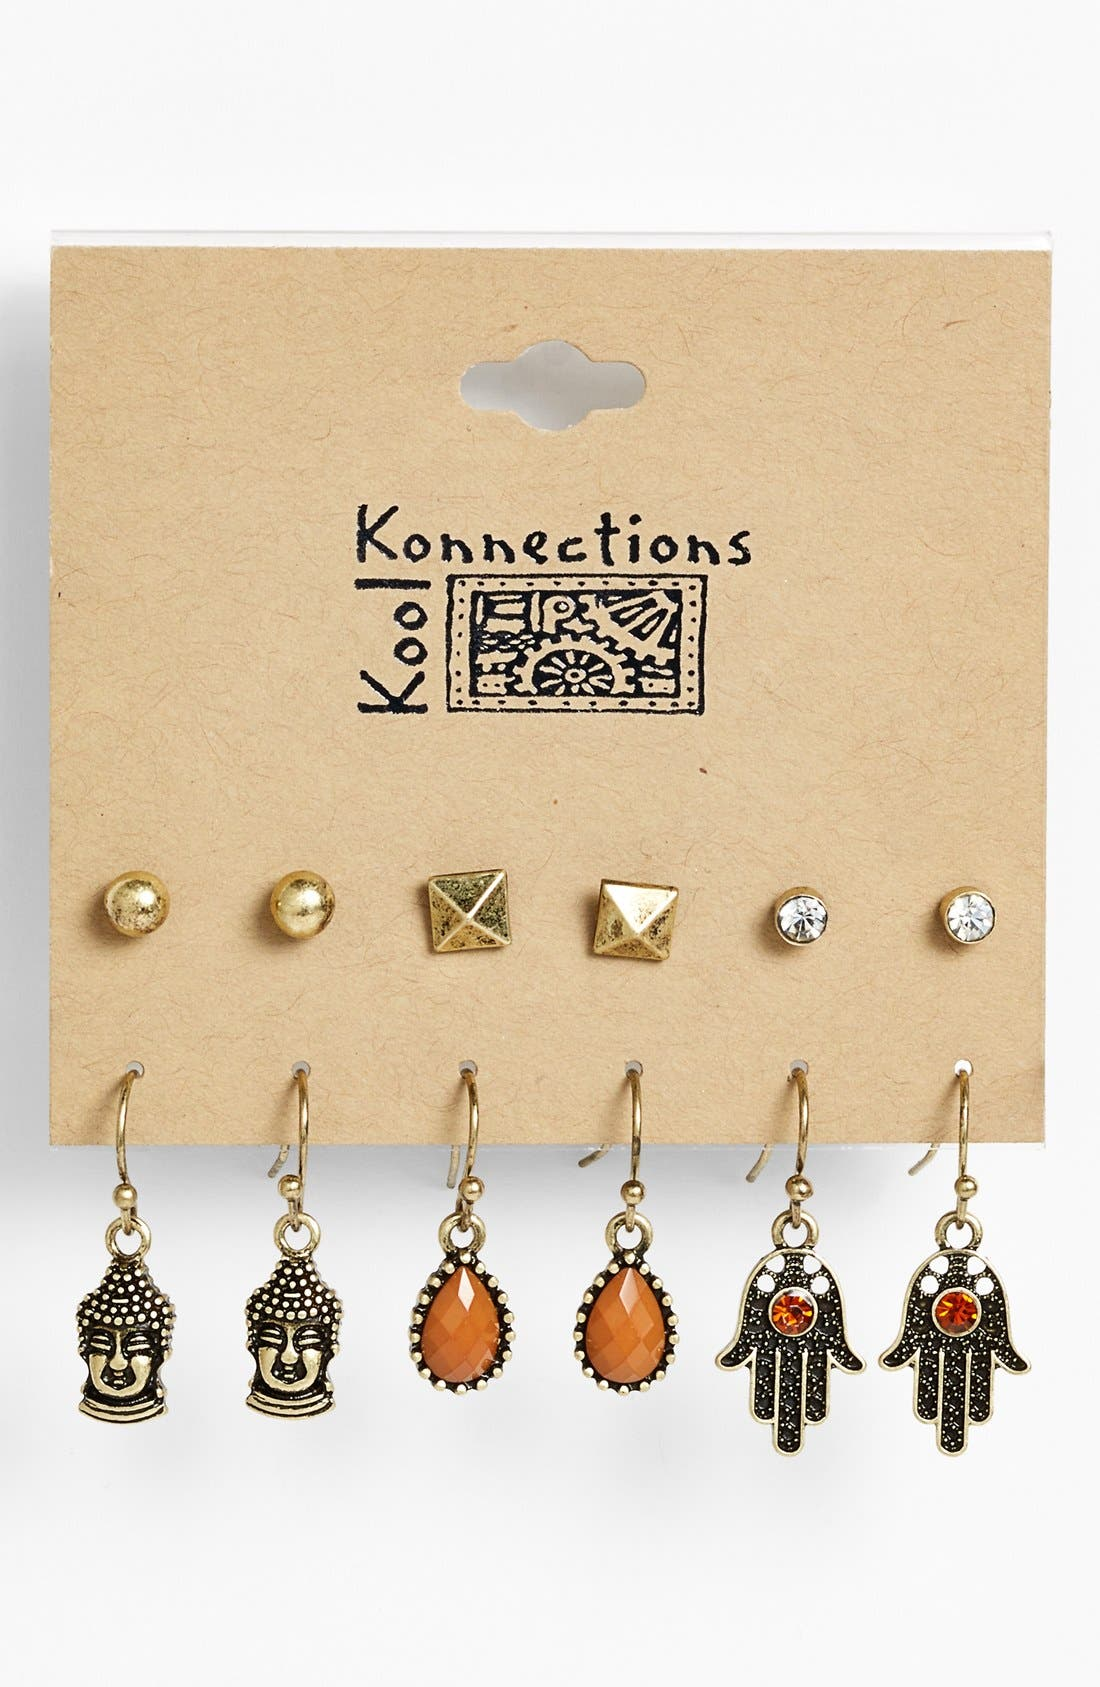 Alternate Image 1 Selected - Orion Mixed Stud Earrings (Set of 12)